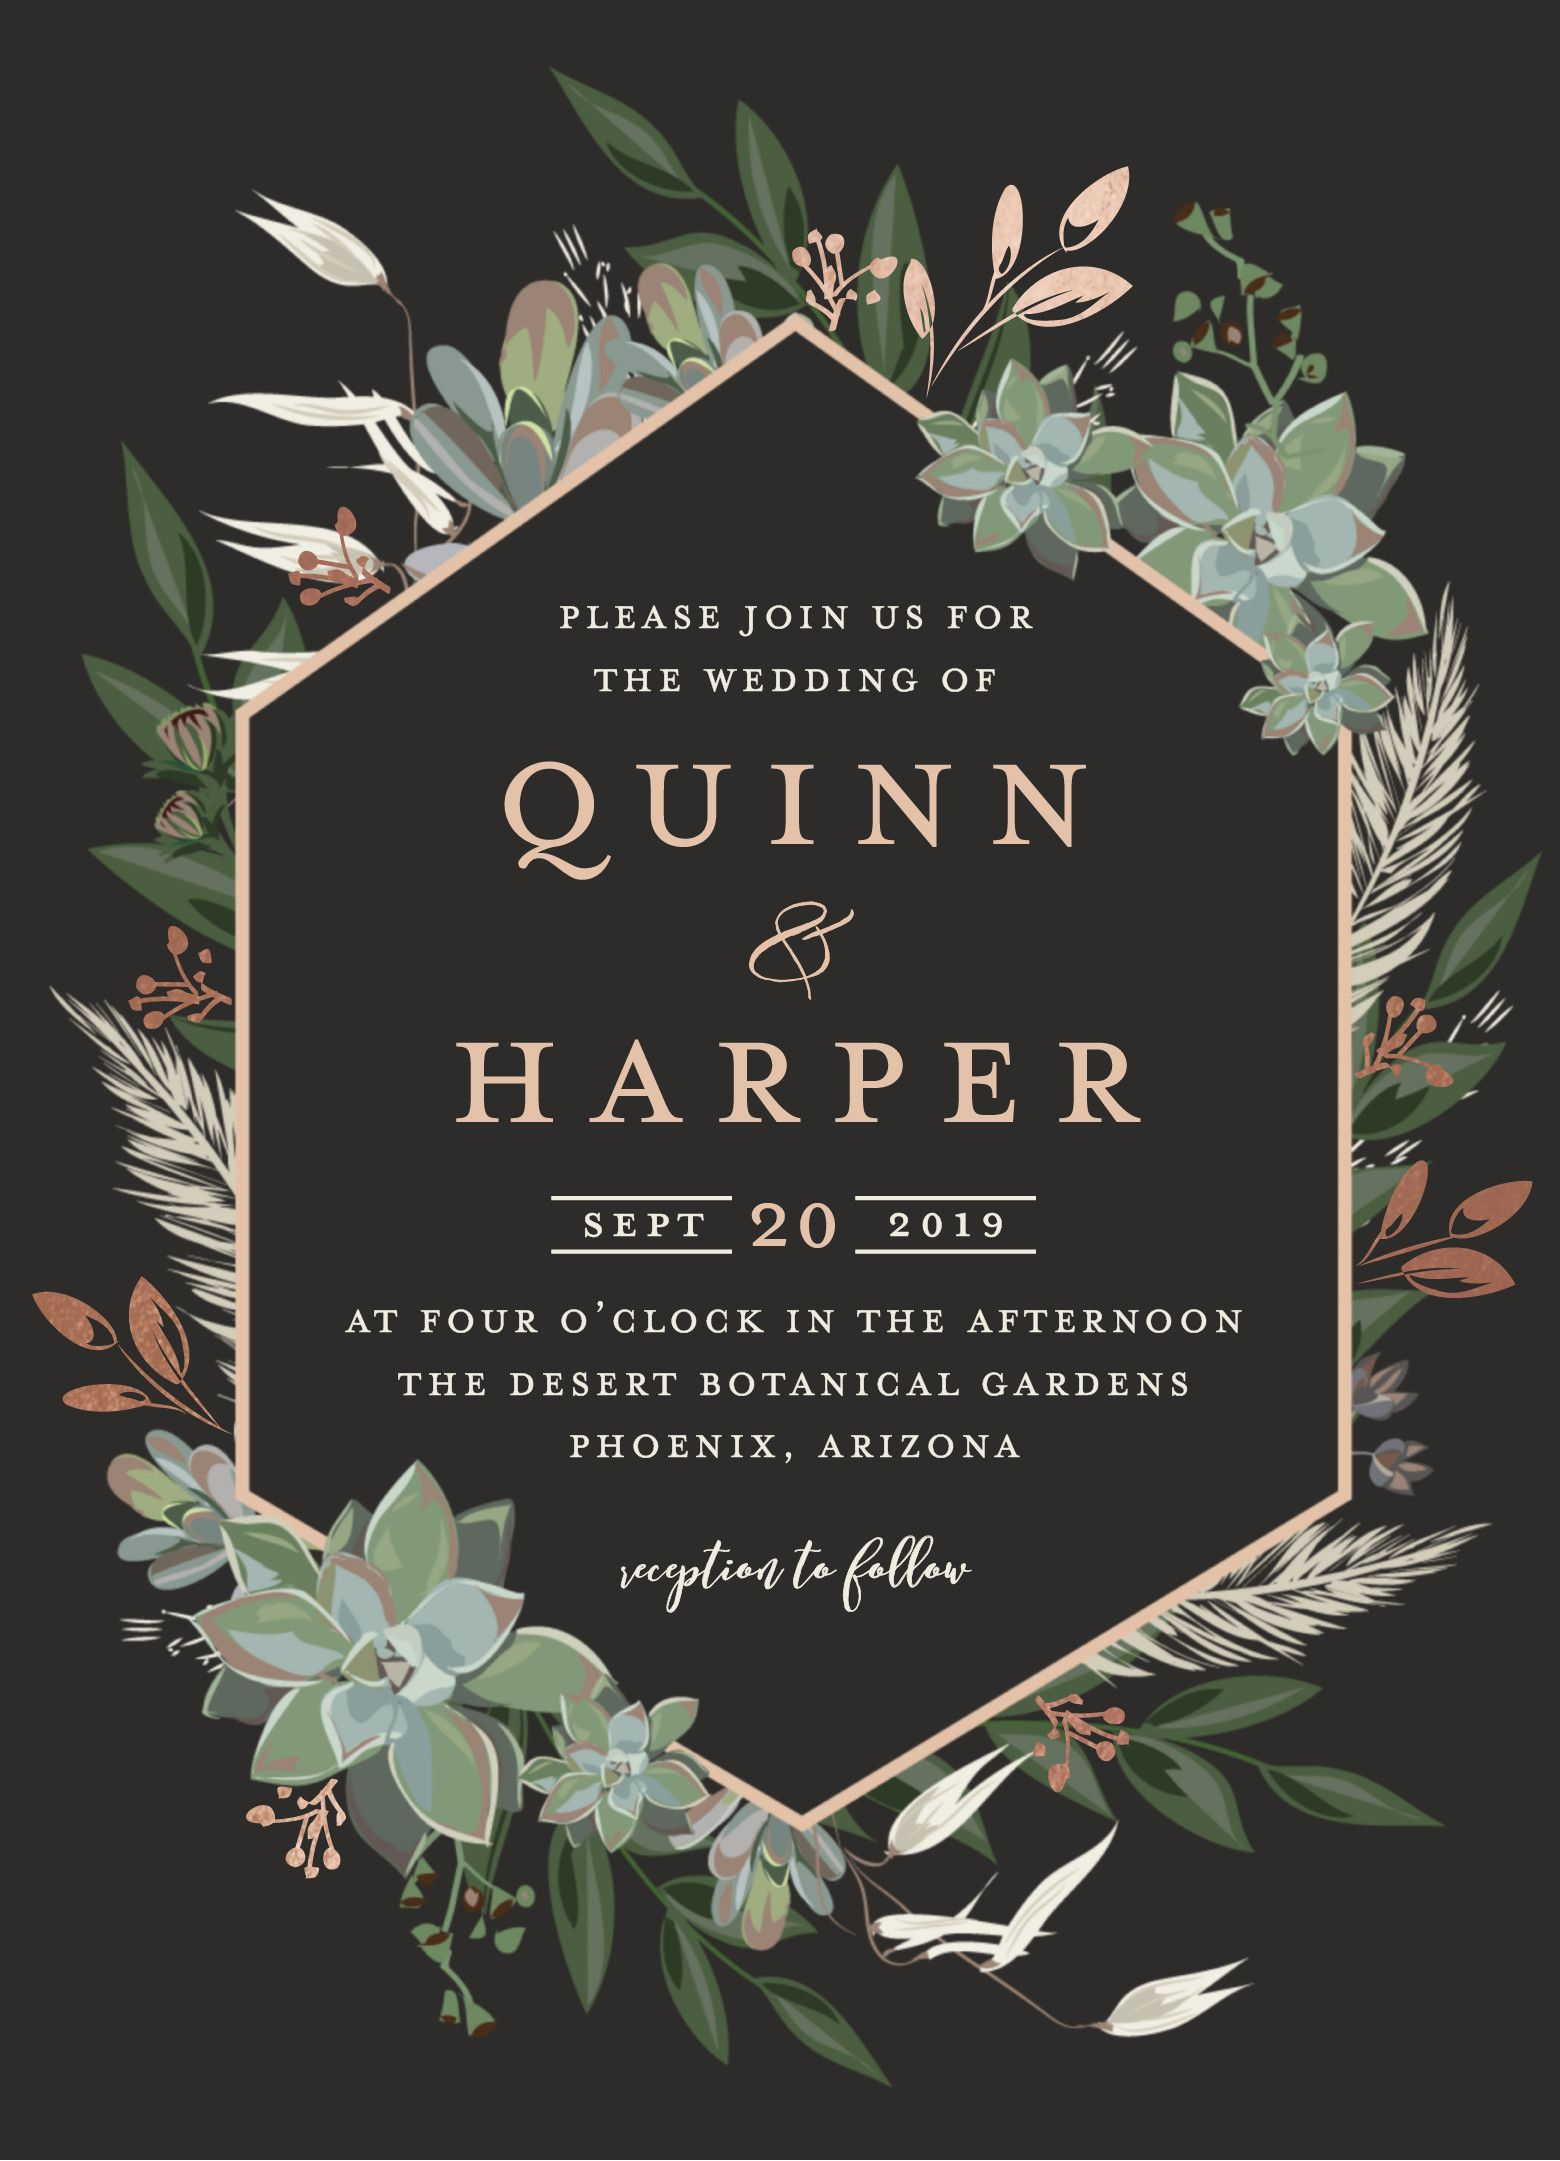 wedding invitation design featuring a succulent geometric